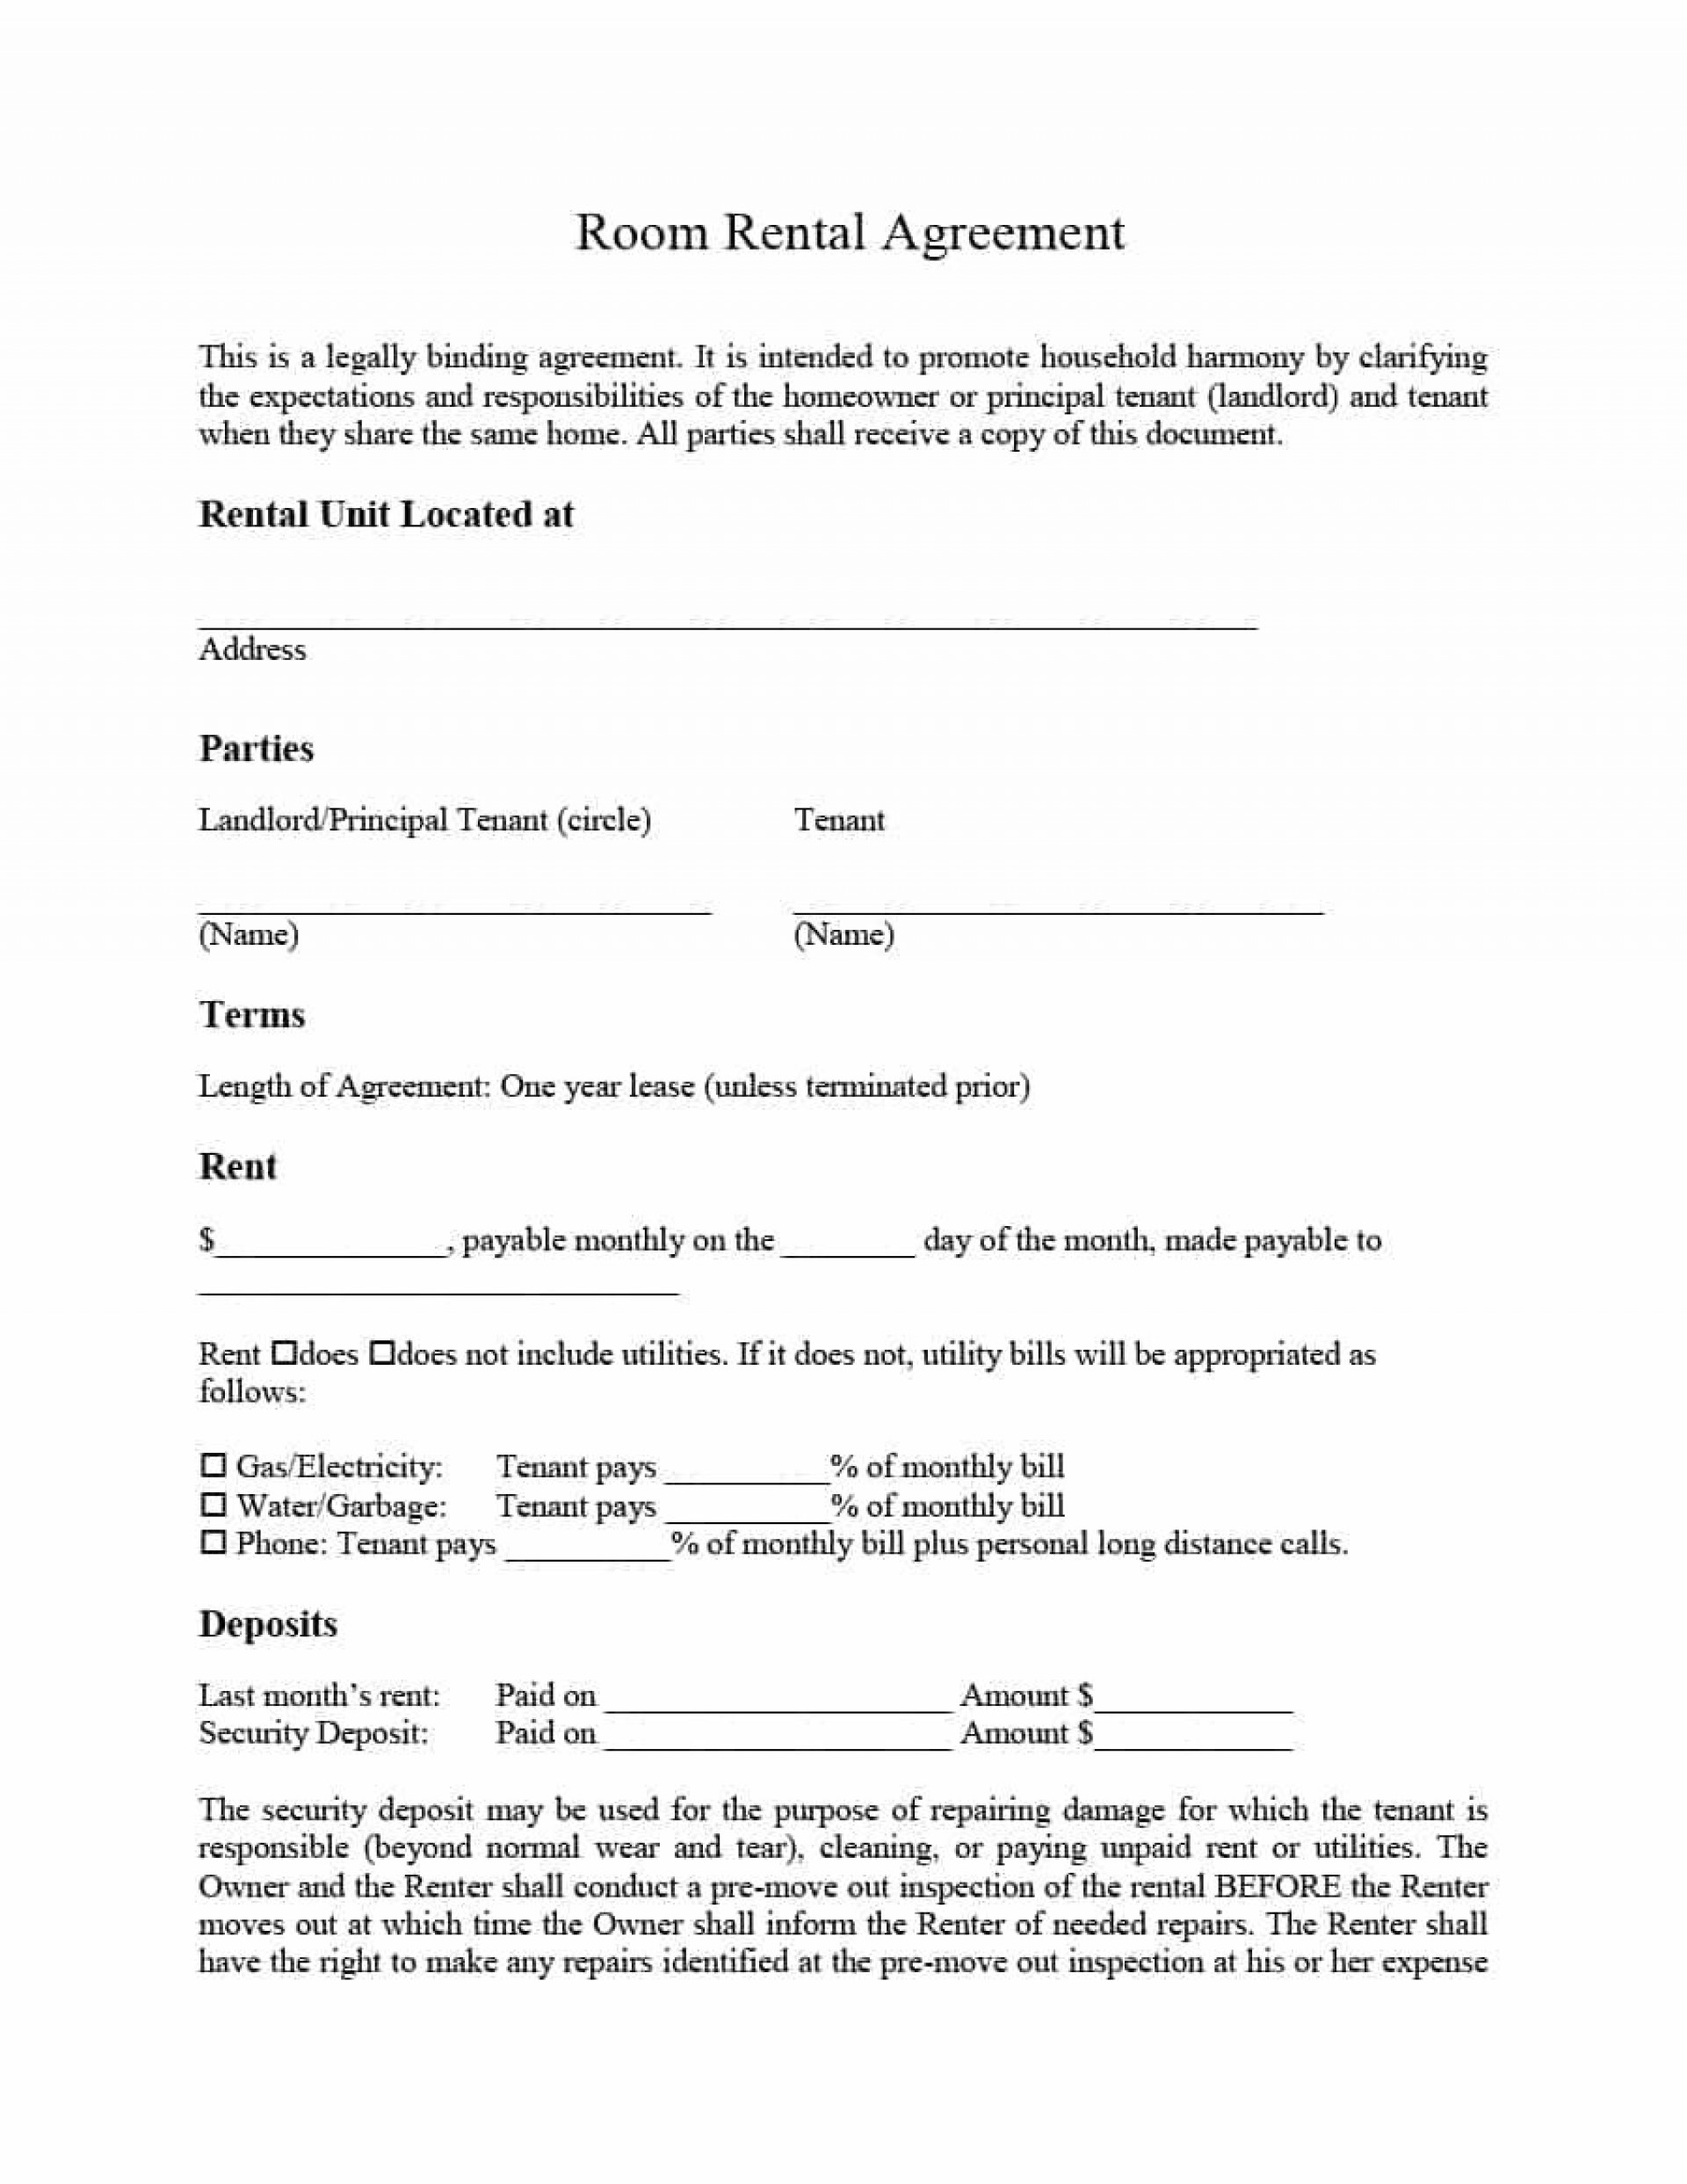 003 Impressive Rent Lease Agreement Format High Resolution  Shop Rental In English Tamil Simple Form1920